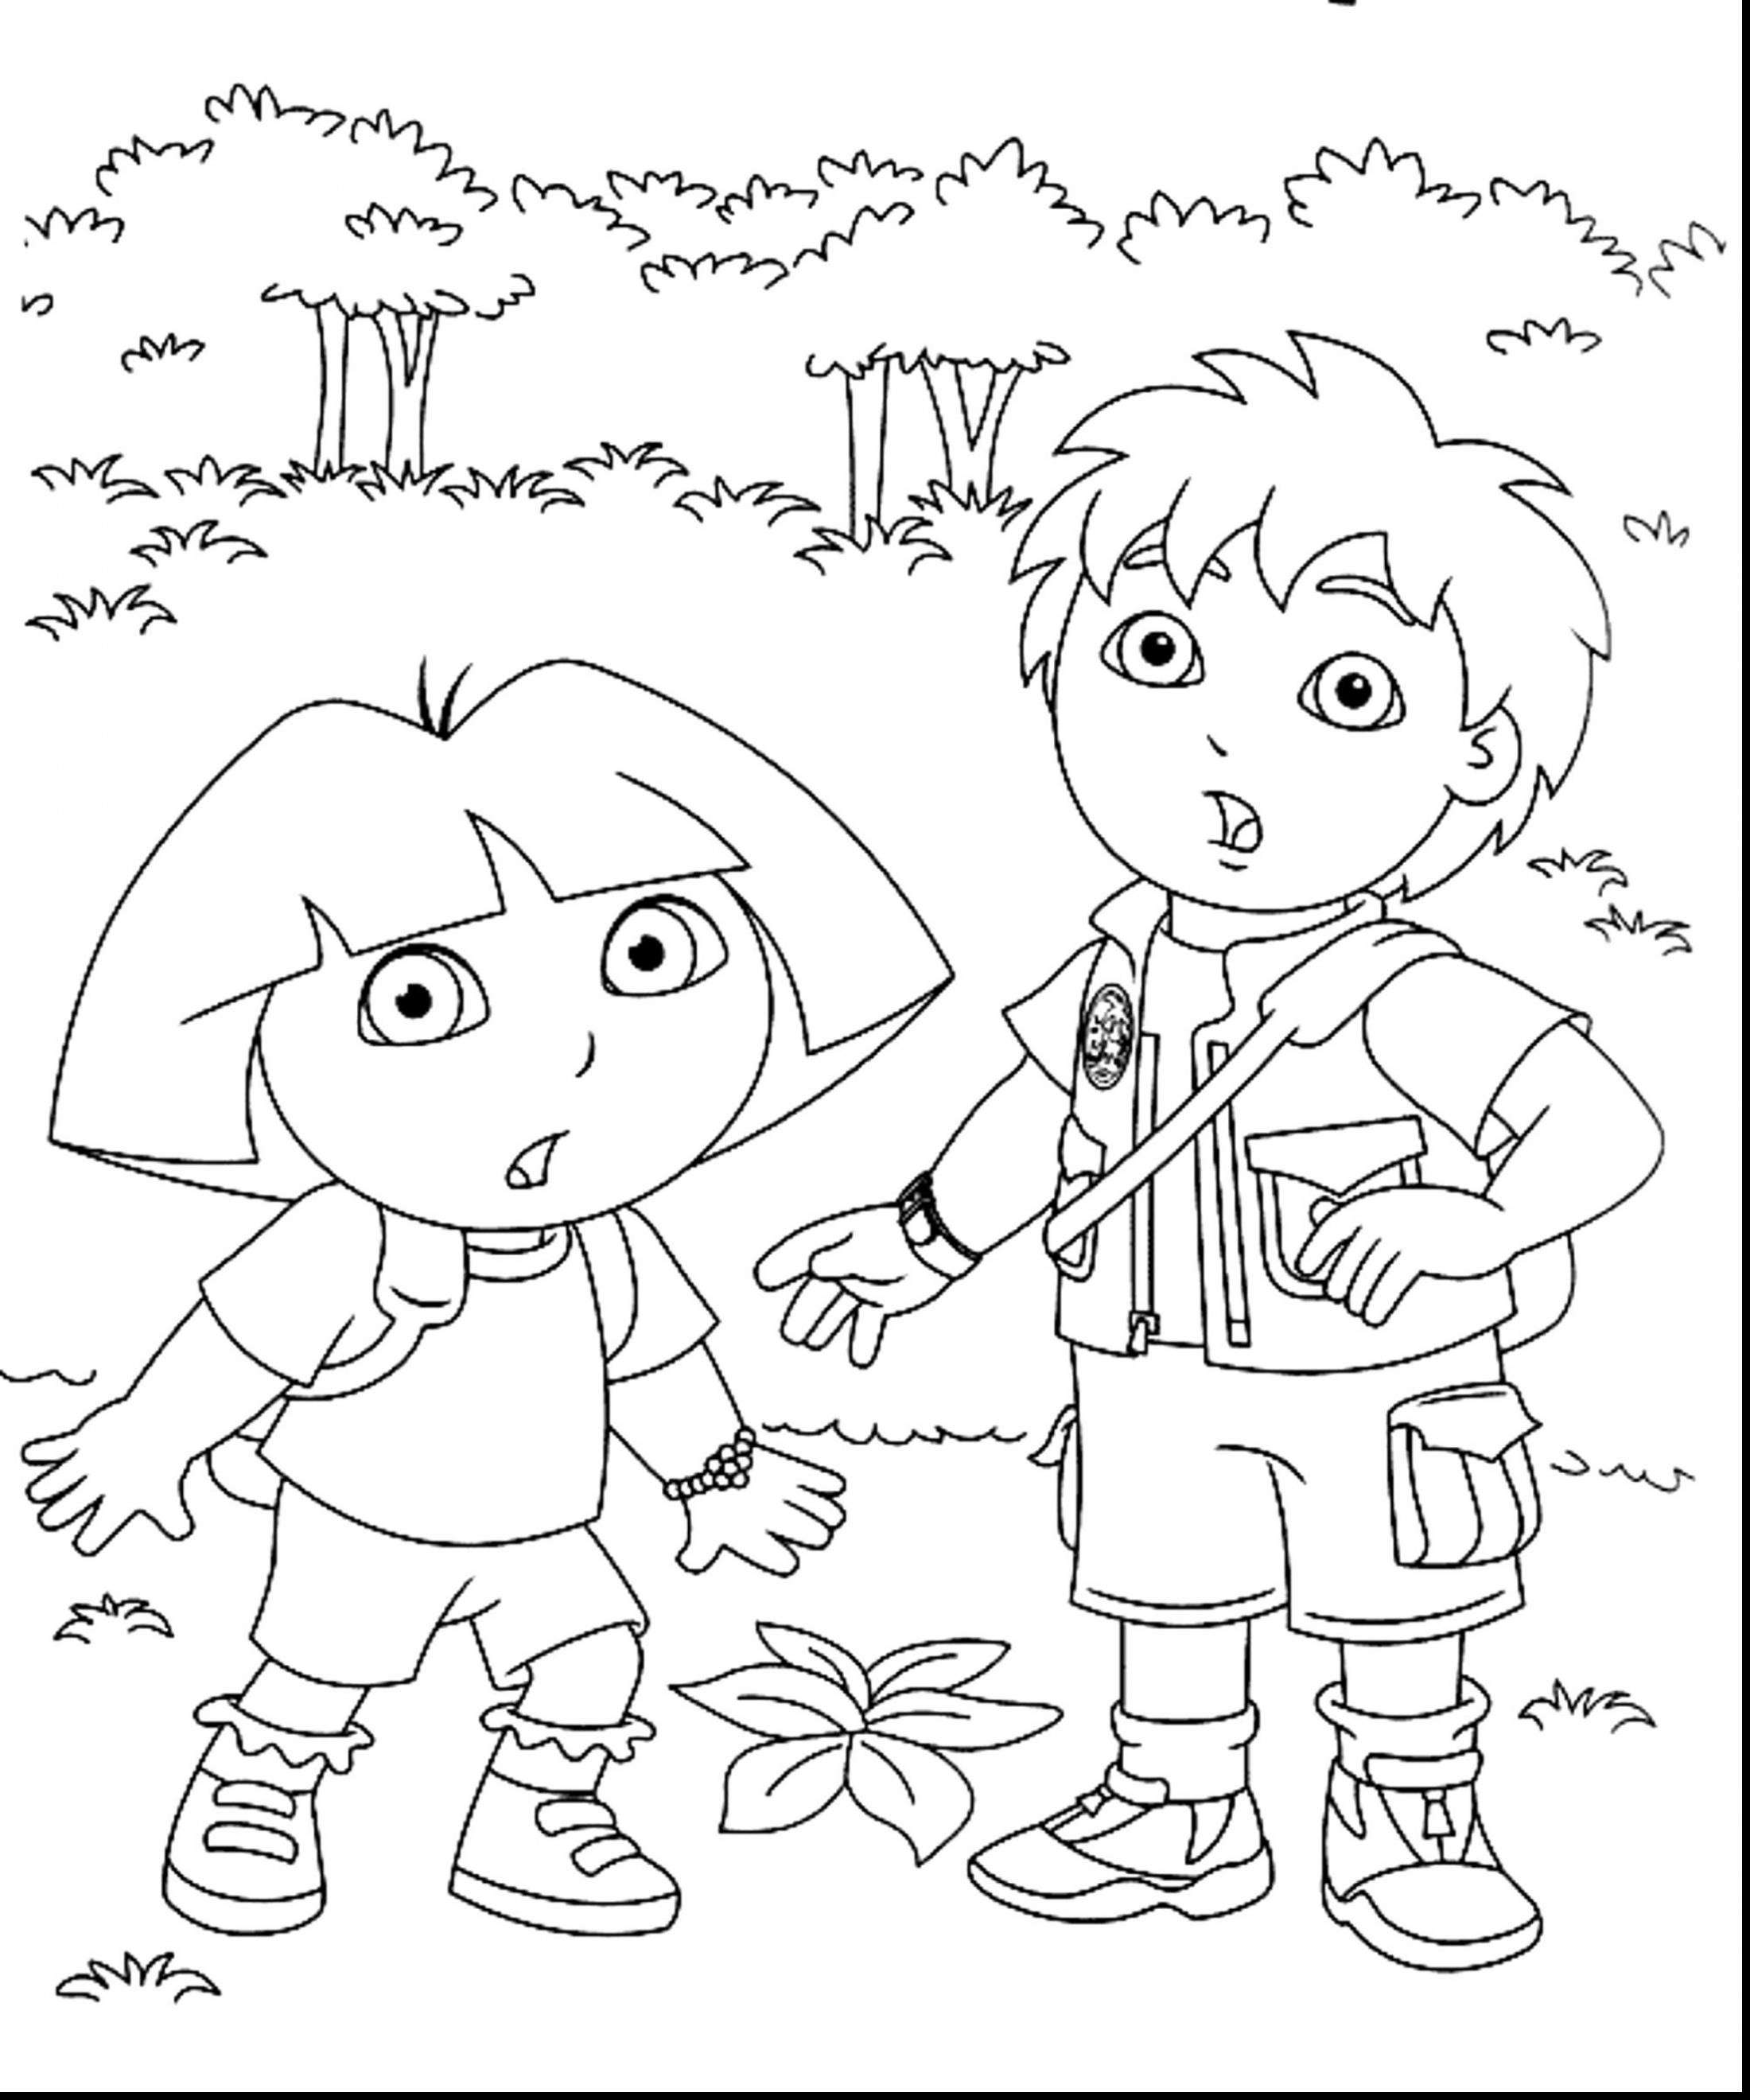 Team Umizoomi Christmas Coloring Pages With Nick Jr Dora